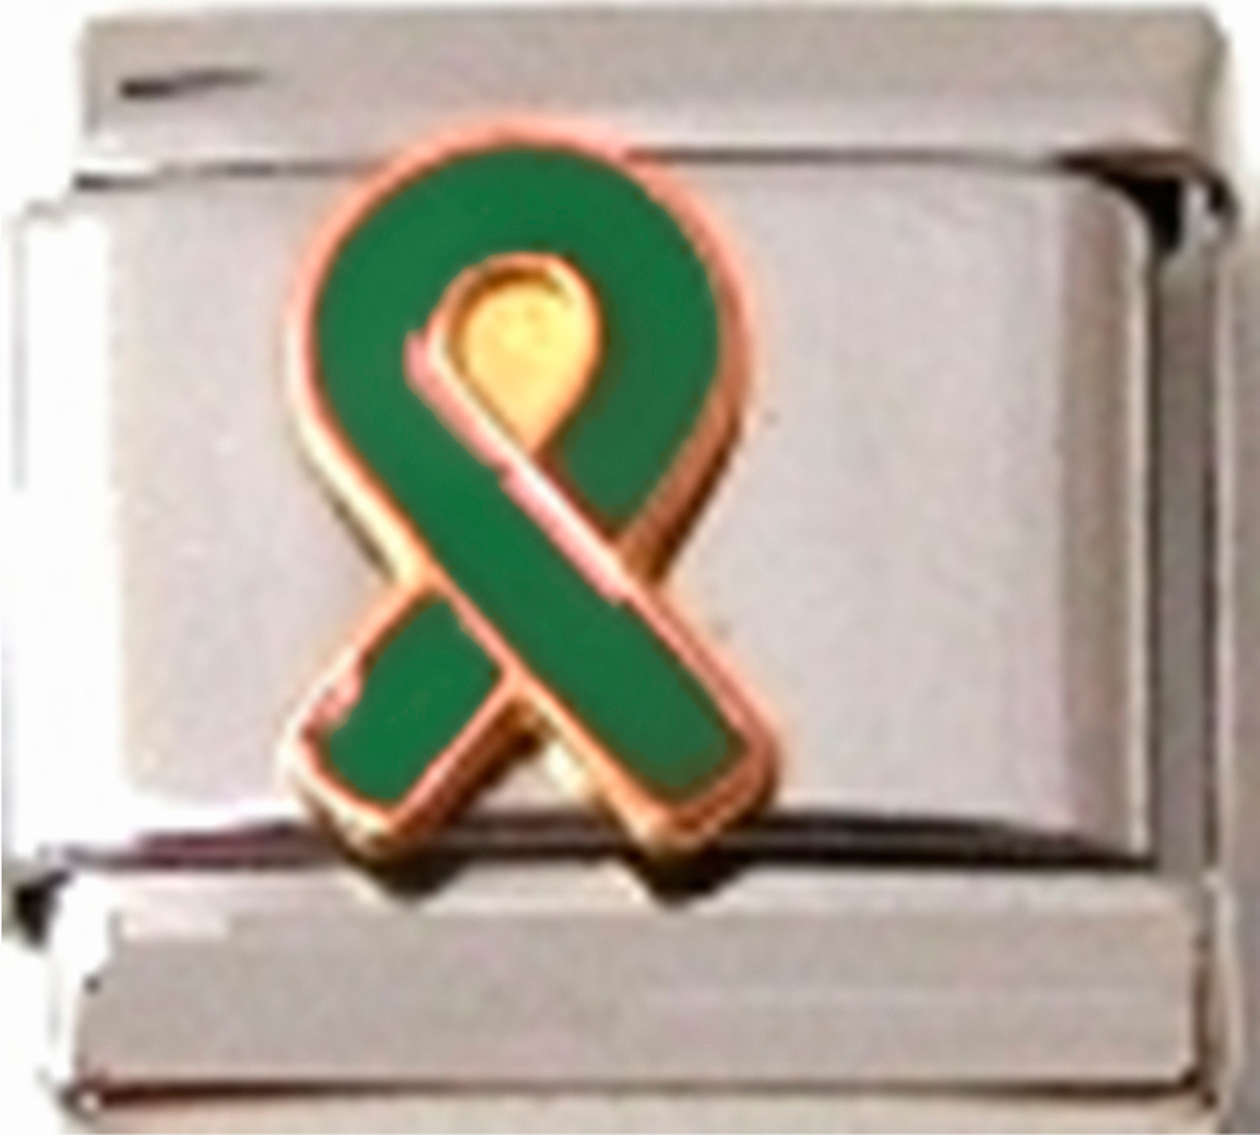 NC206-Ribbon-Green